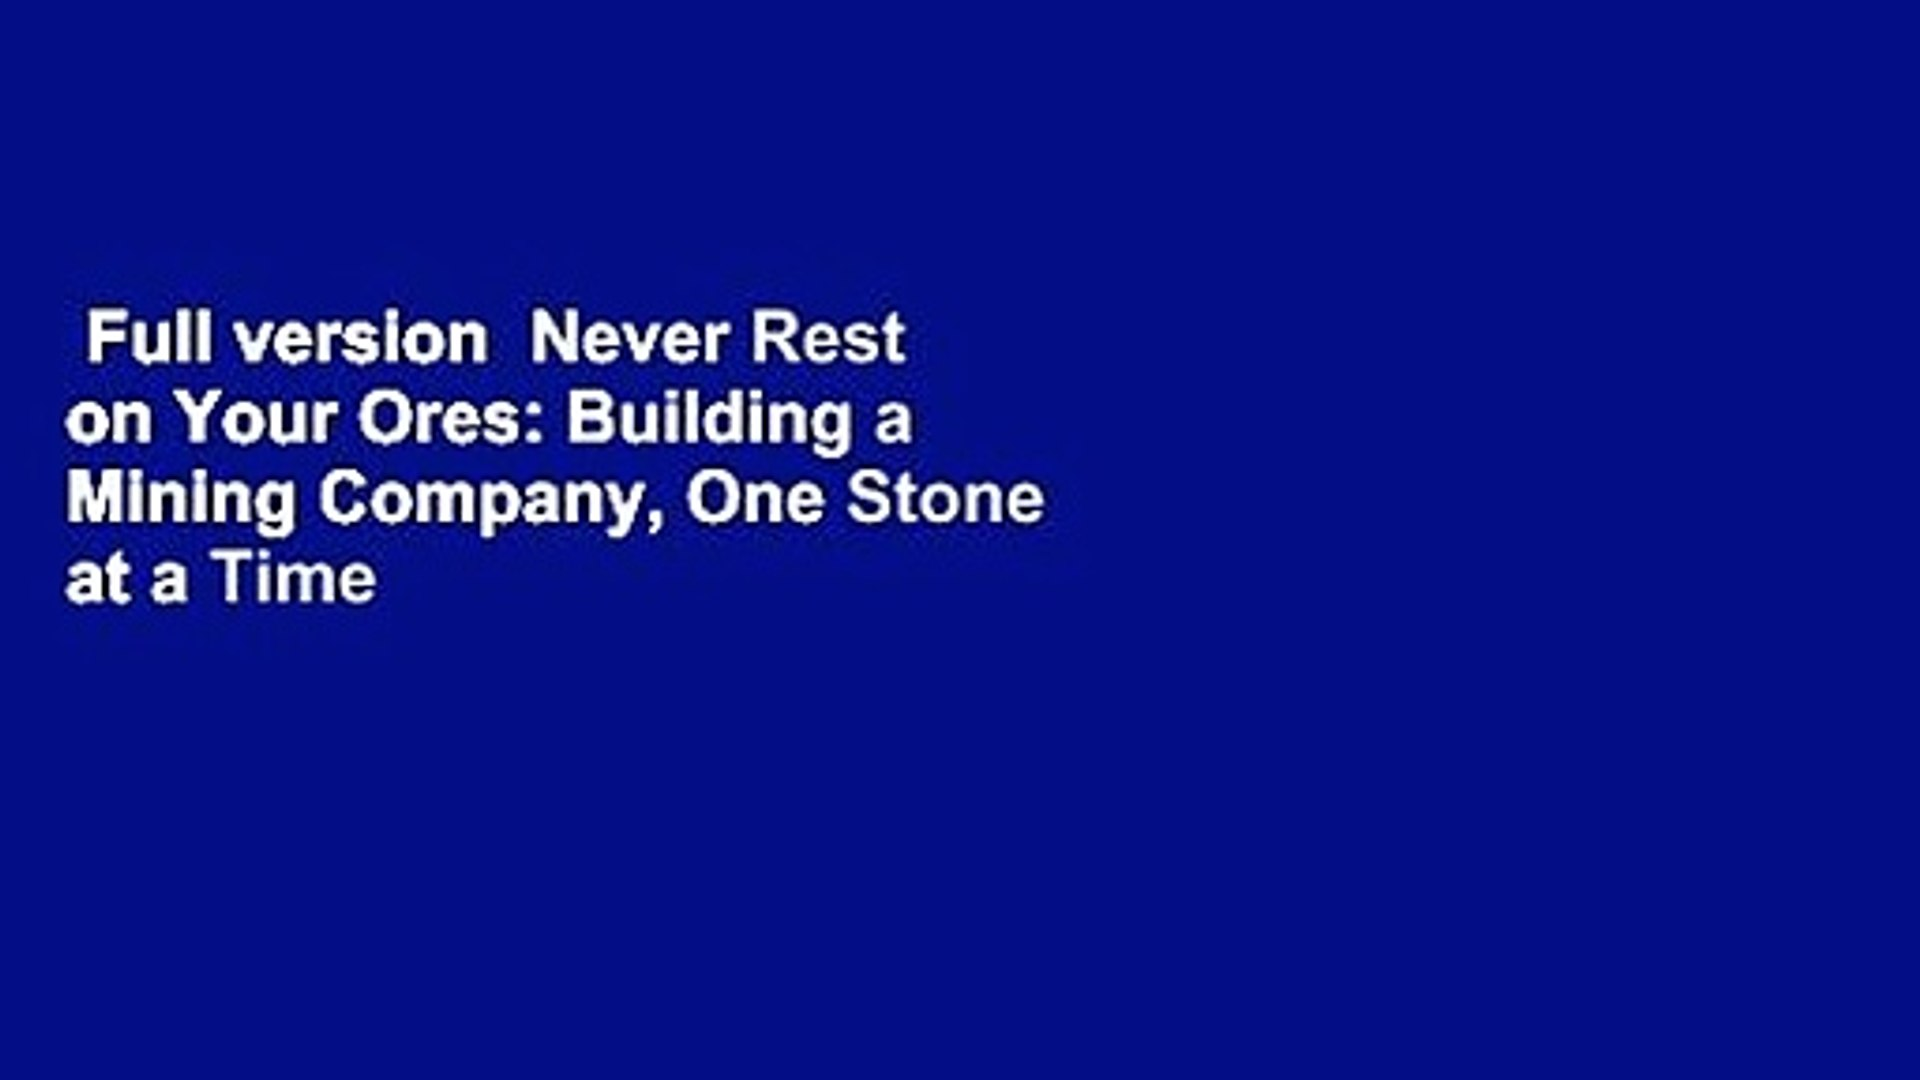 One Stone at a Time Never Rest on Your Ores Building a Mining Company